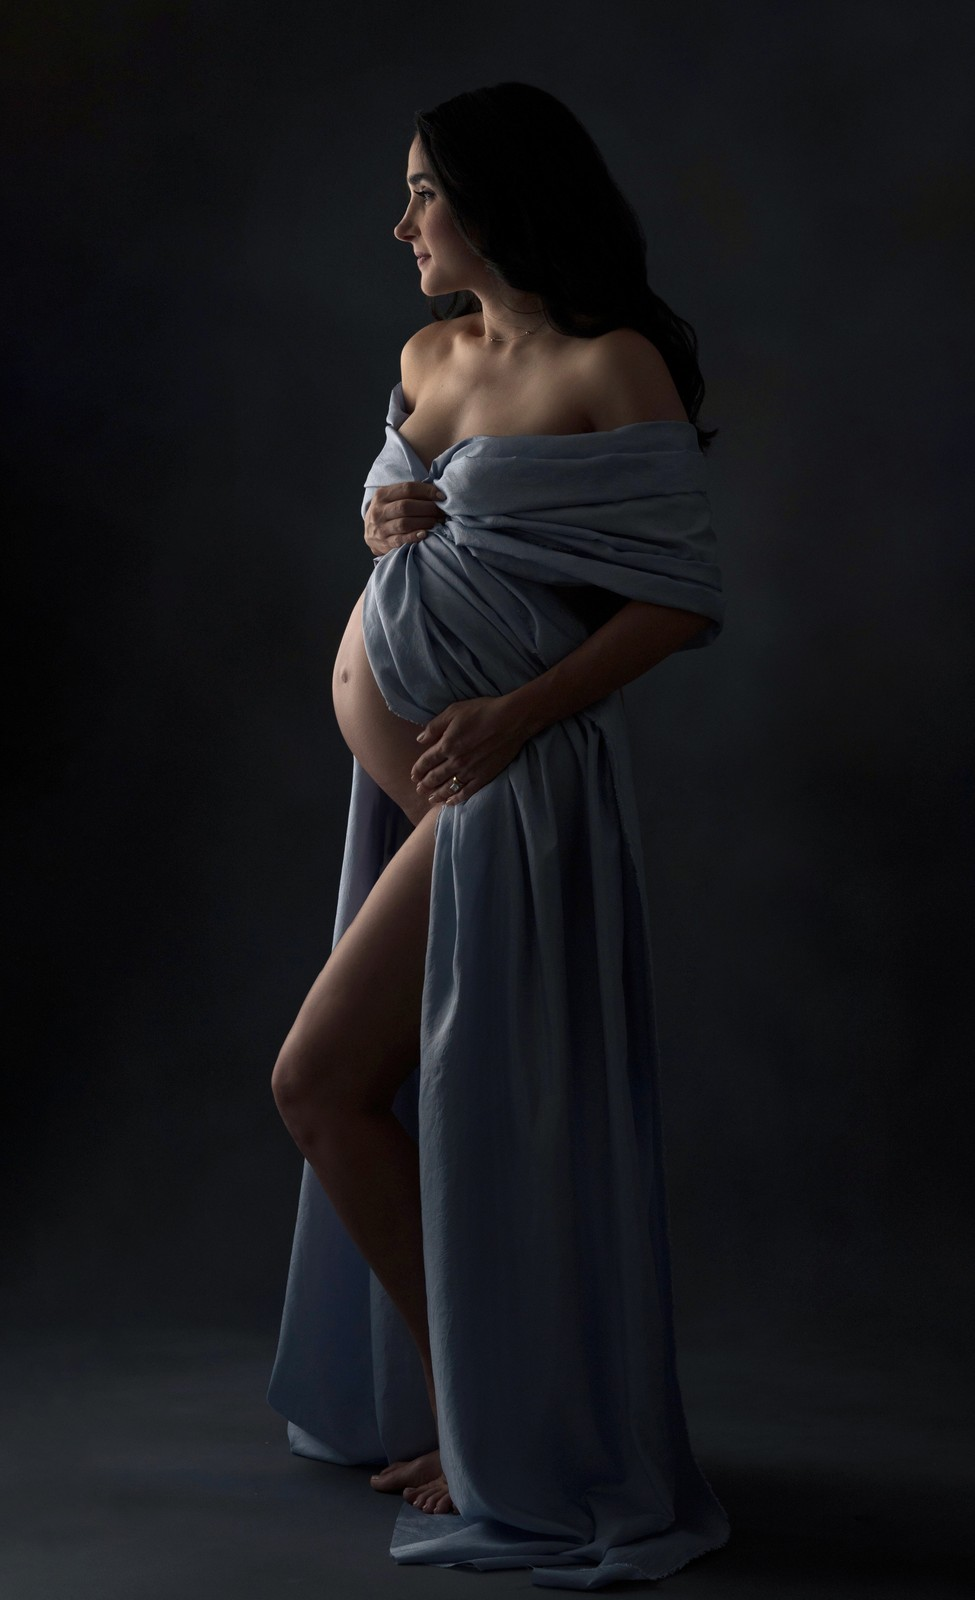 Dramatically Lit Maternity Photos